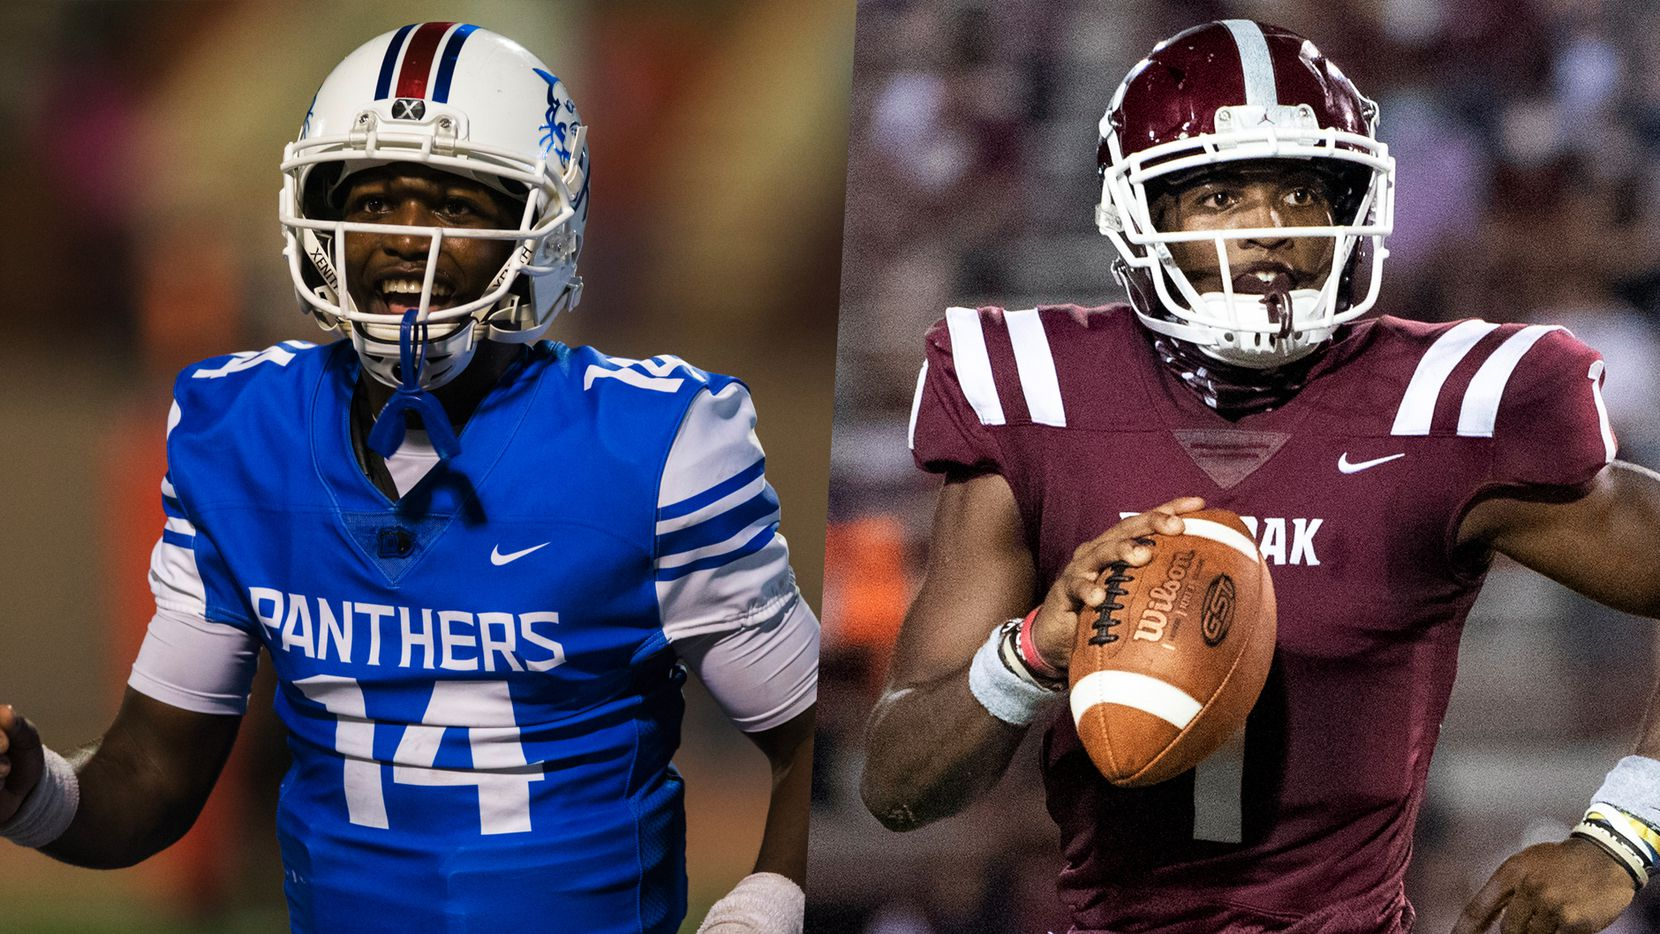 Chris Parson with Duncanville in 2019 (left) and with Red Oak in 2020.